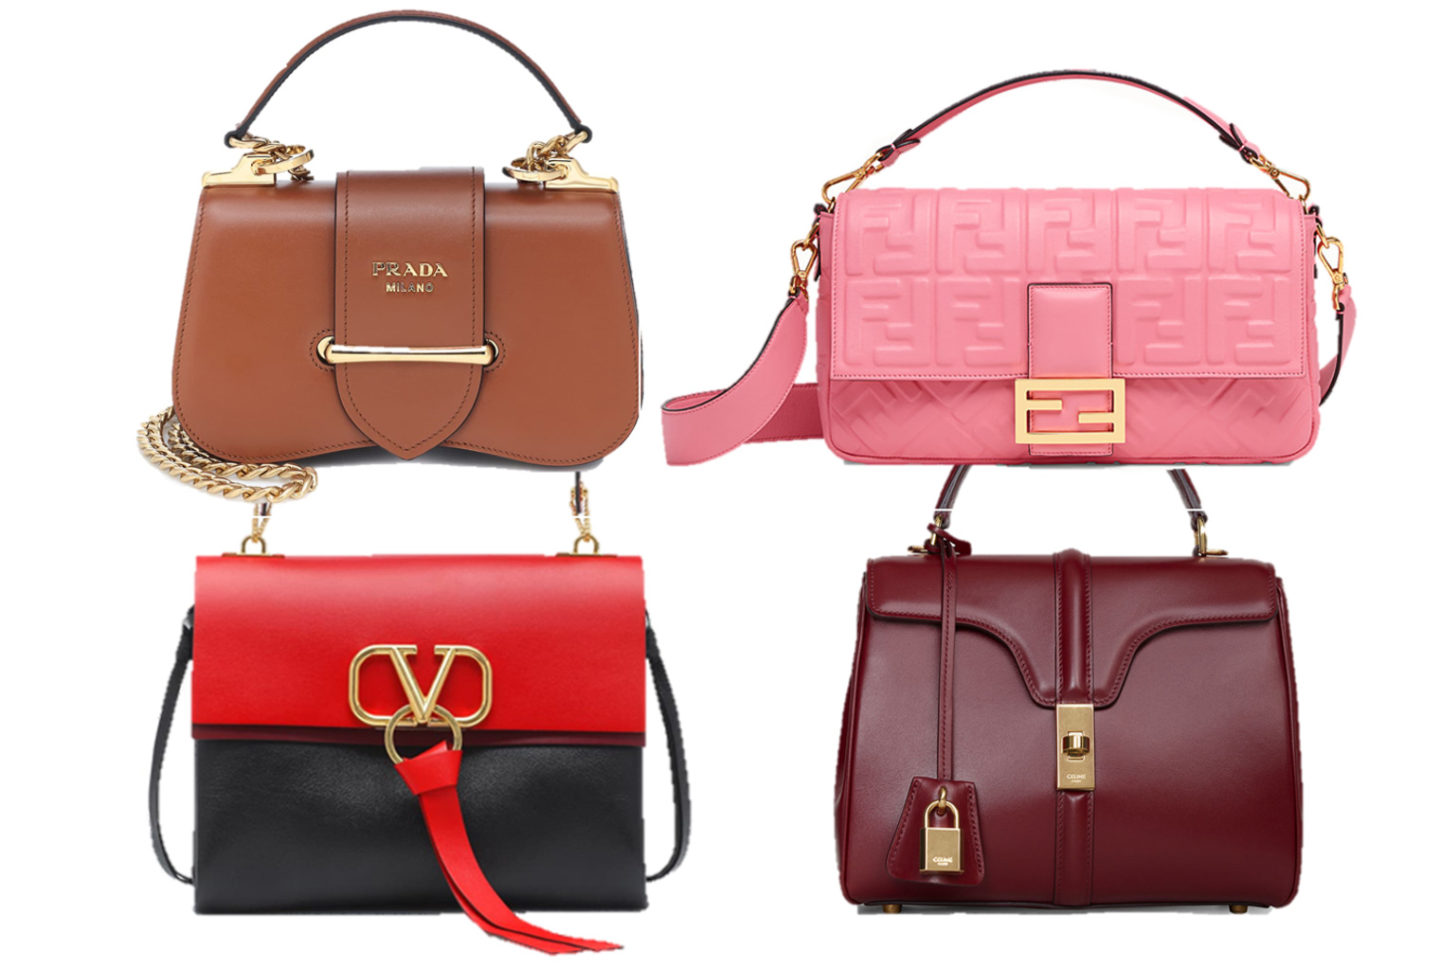 9 Must have bags of 2019: Which one make the cut?